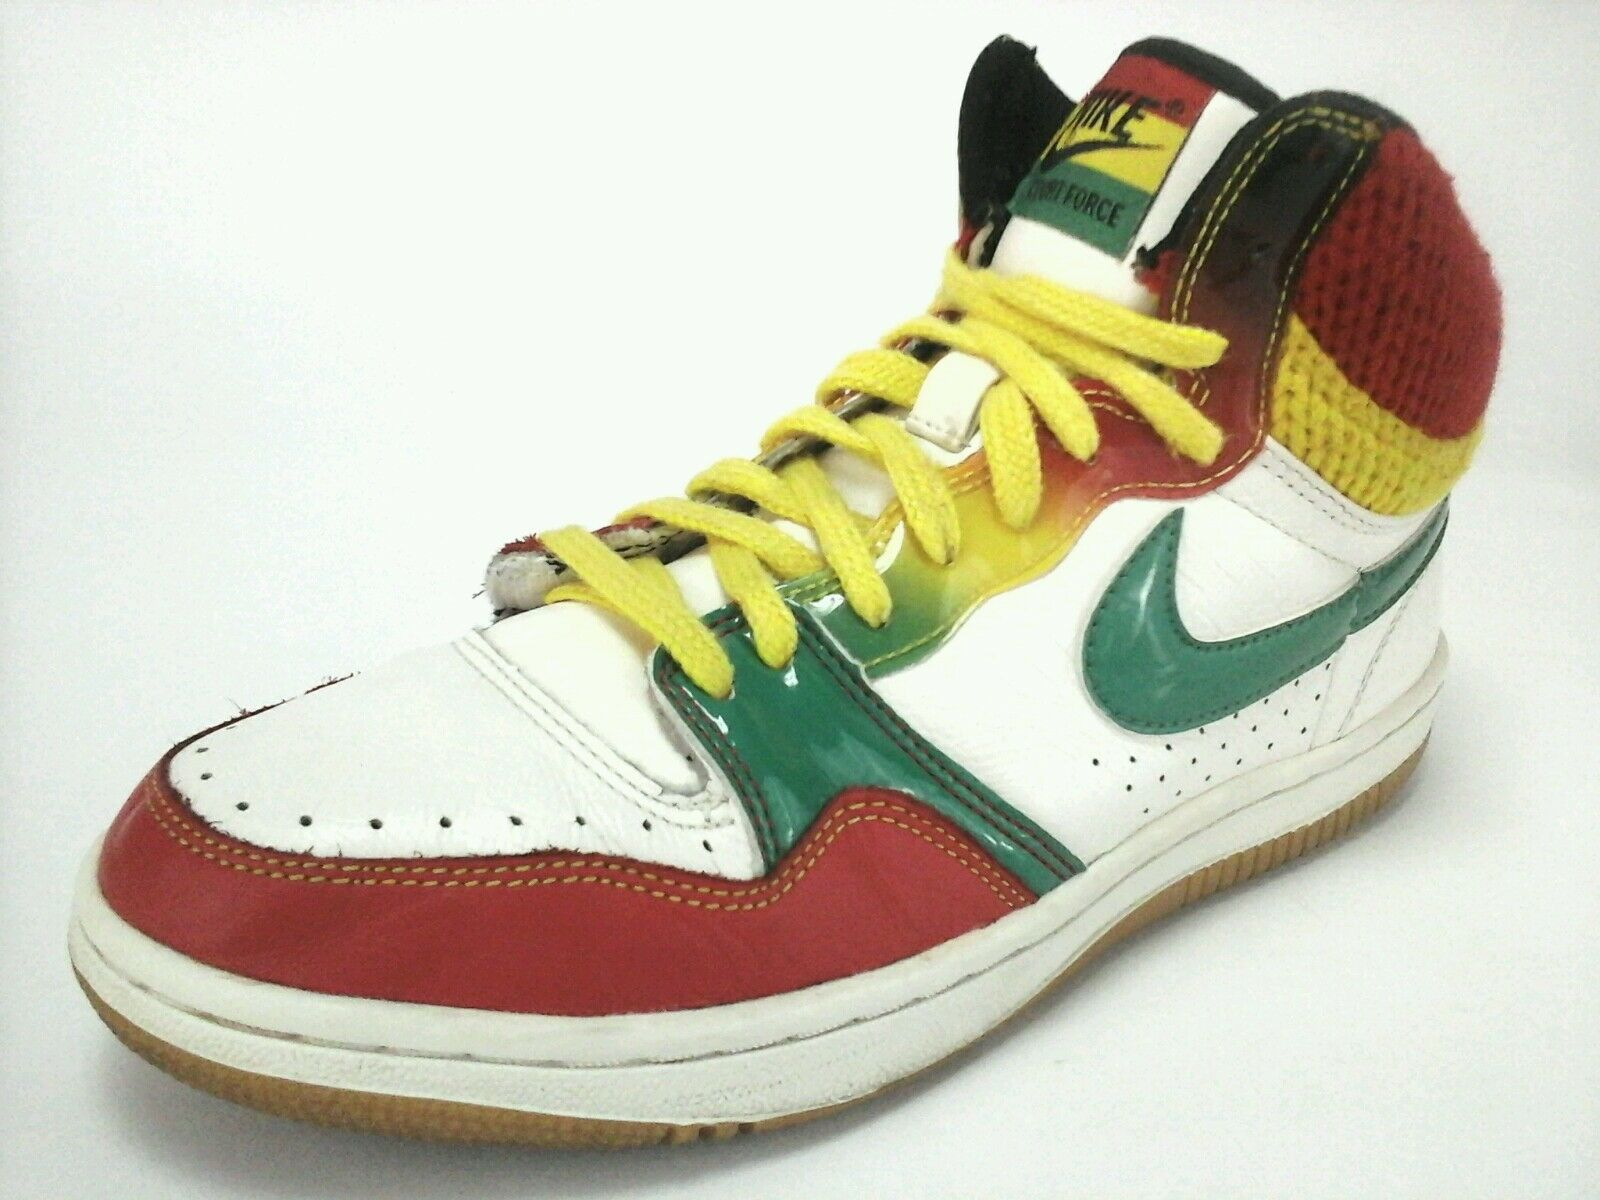 e6964bd2100d3 ... Nike Womens Court Force Roots Rock Raggae Mid Top shoes shoes shoes  Sneakers US 9.5 995d39 ...